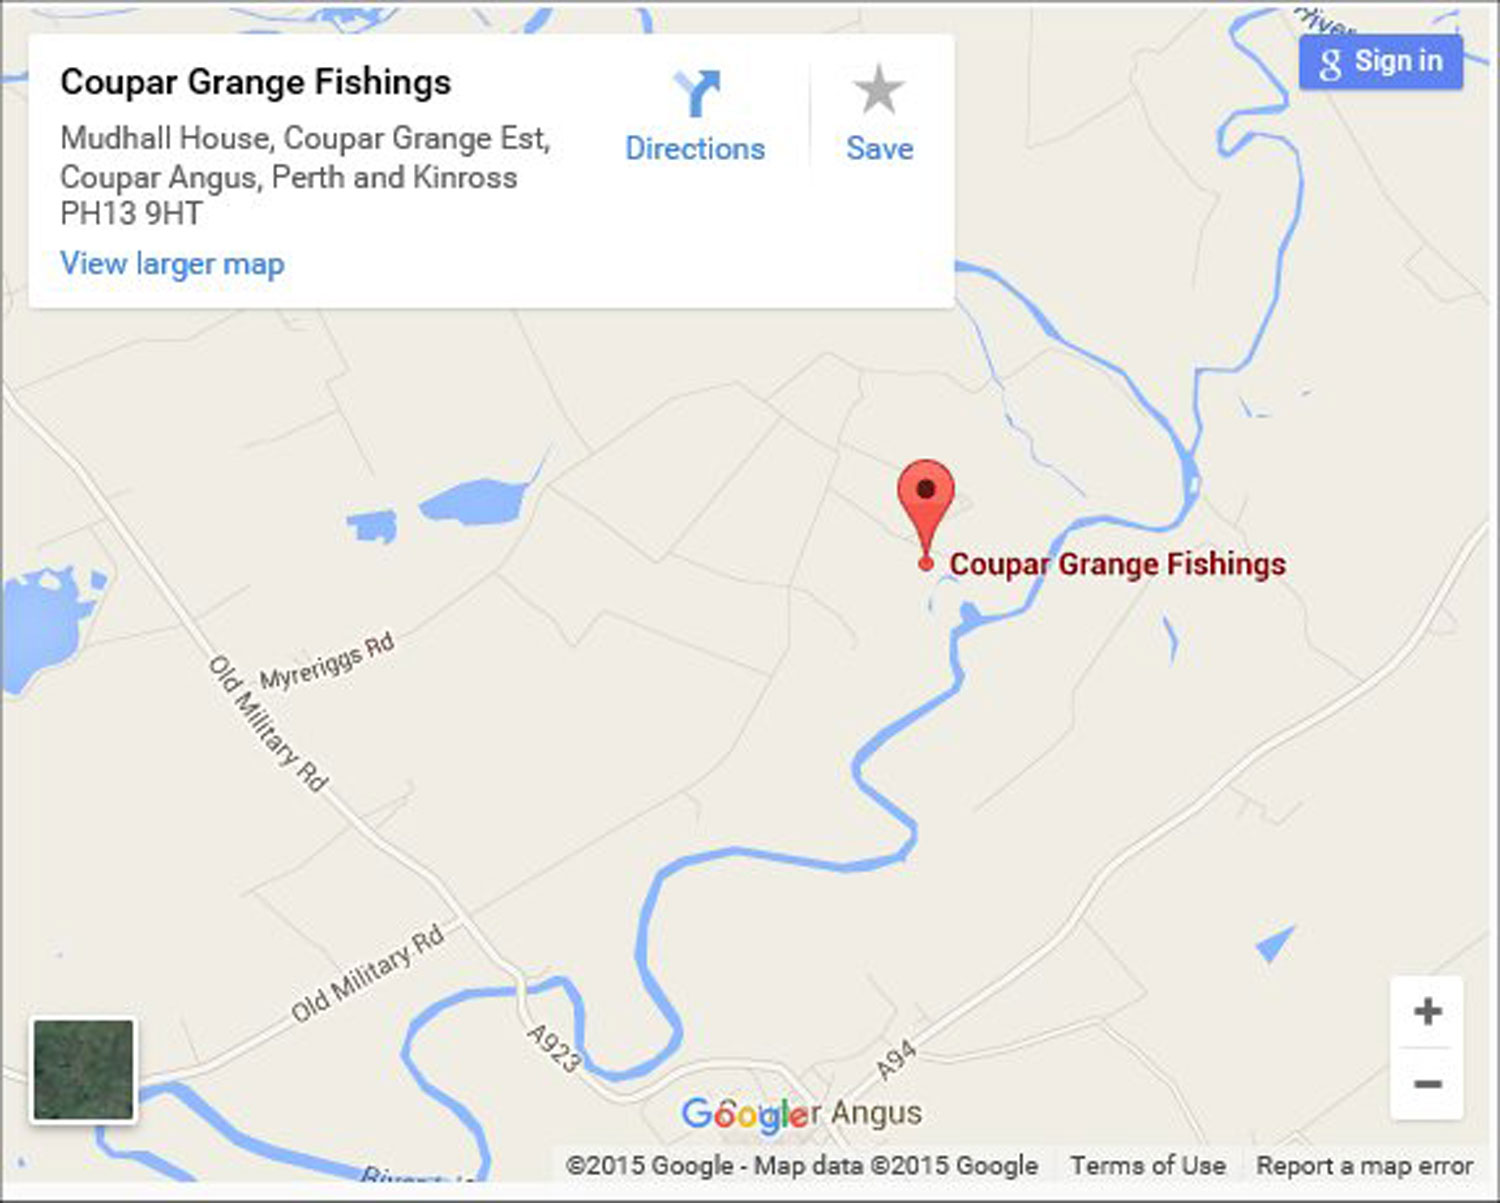 Coupar Grange Fishings - find us